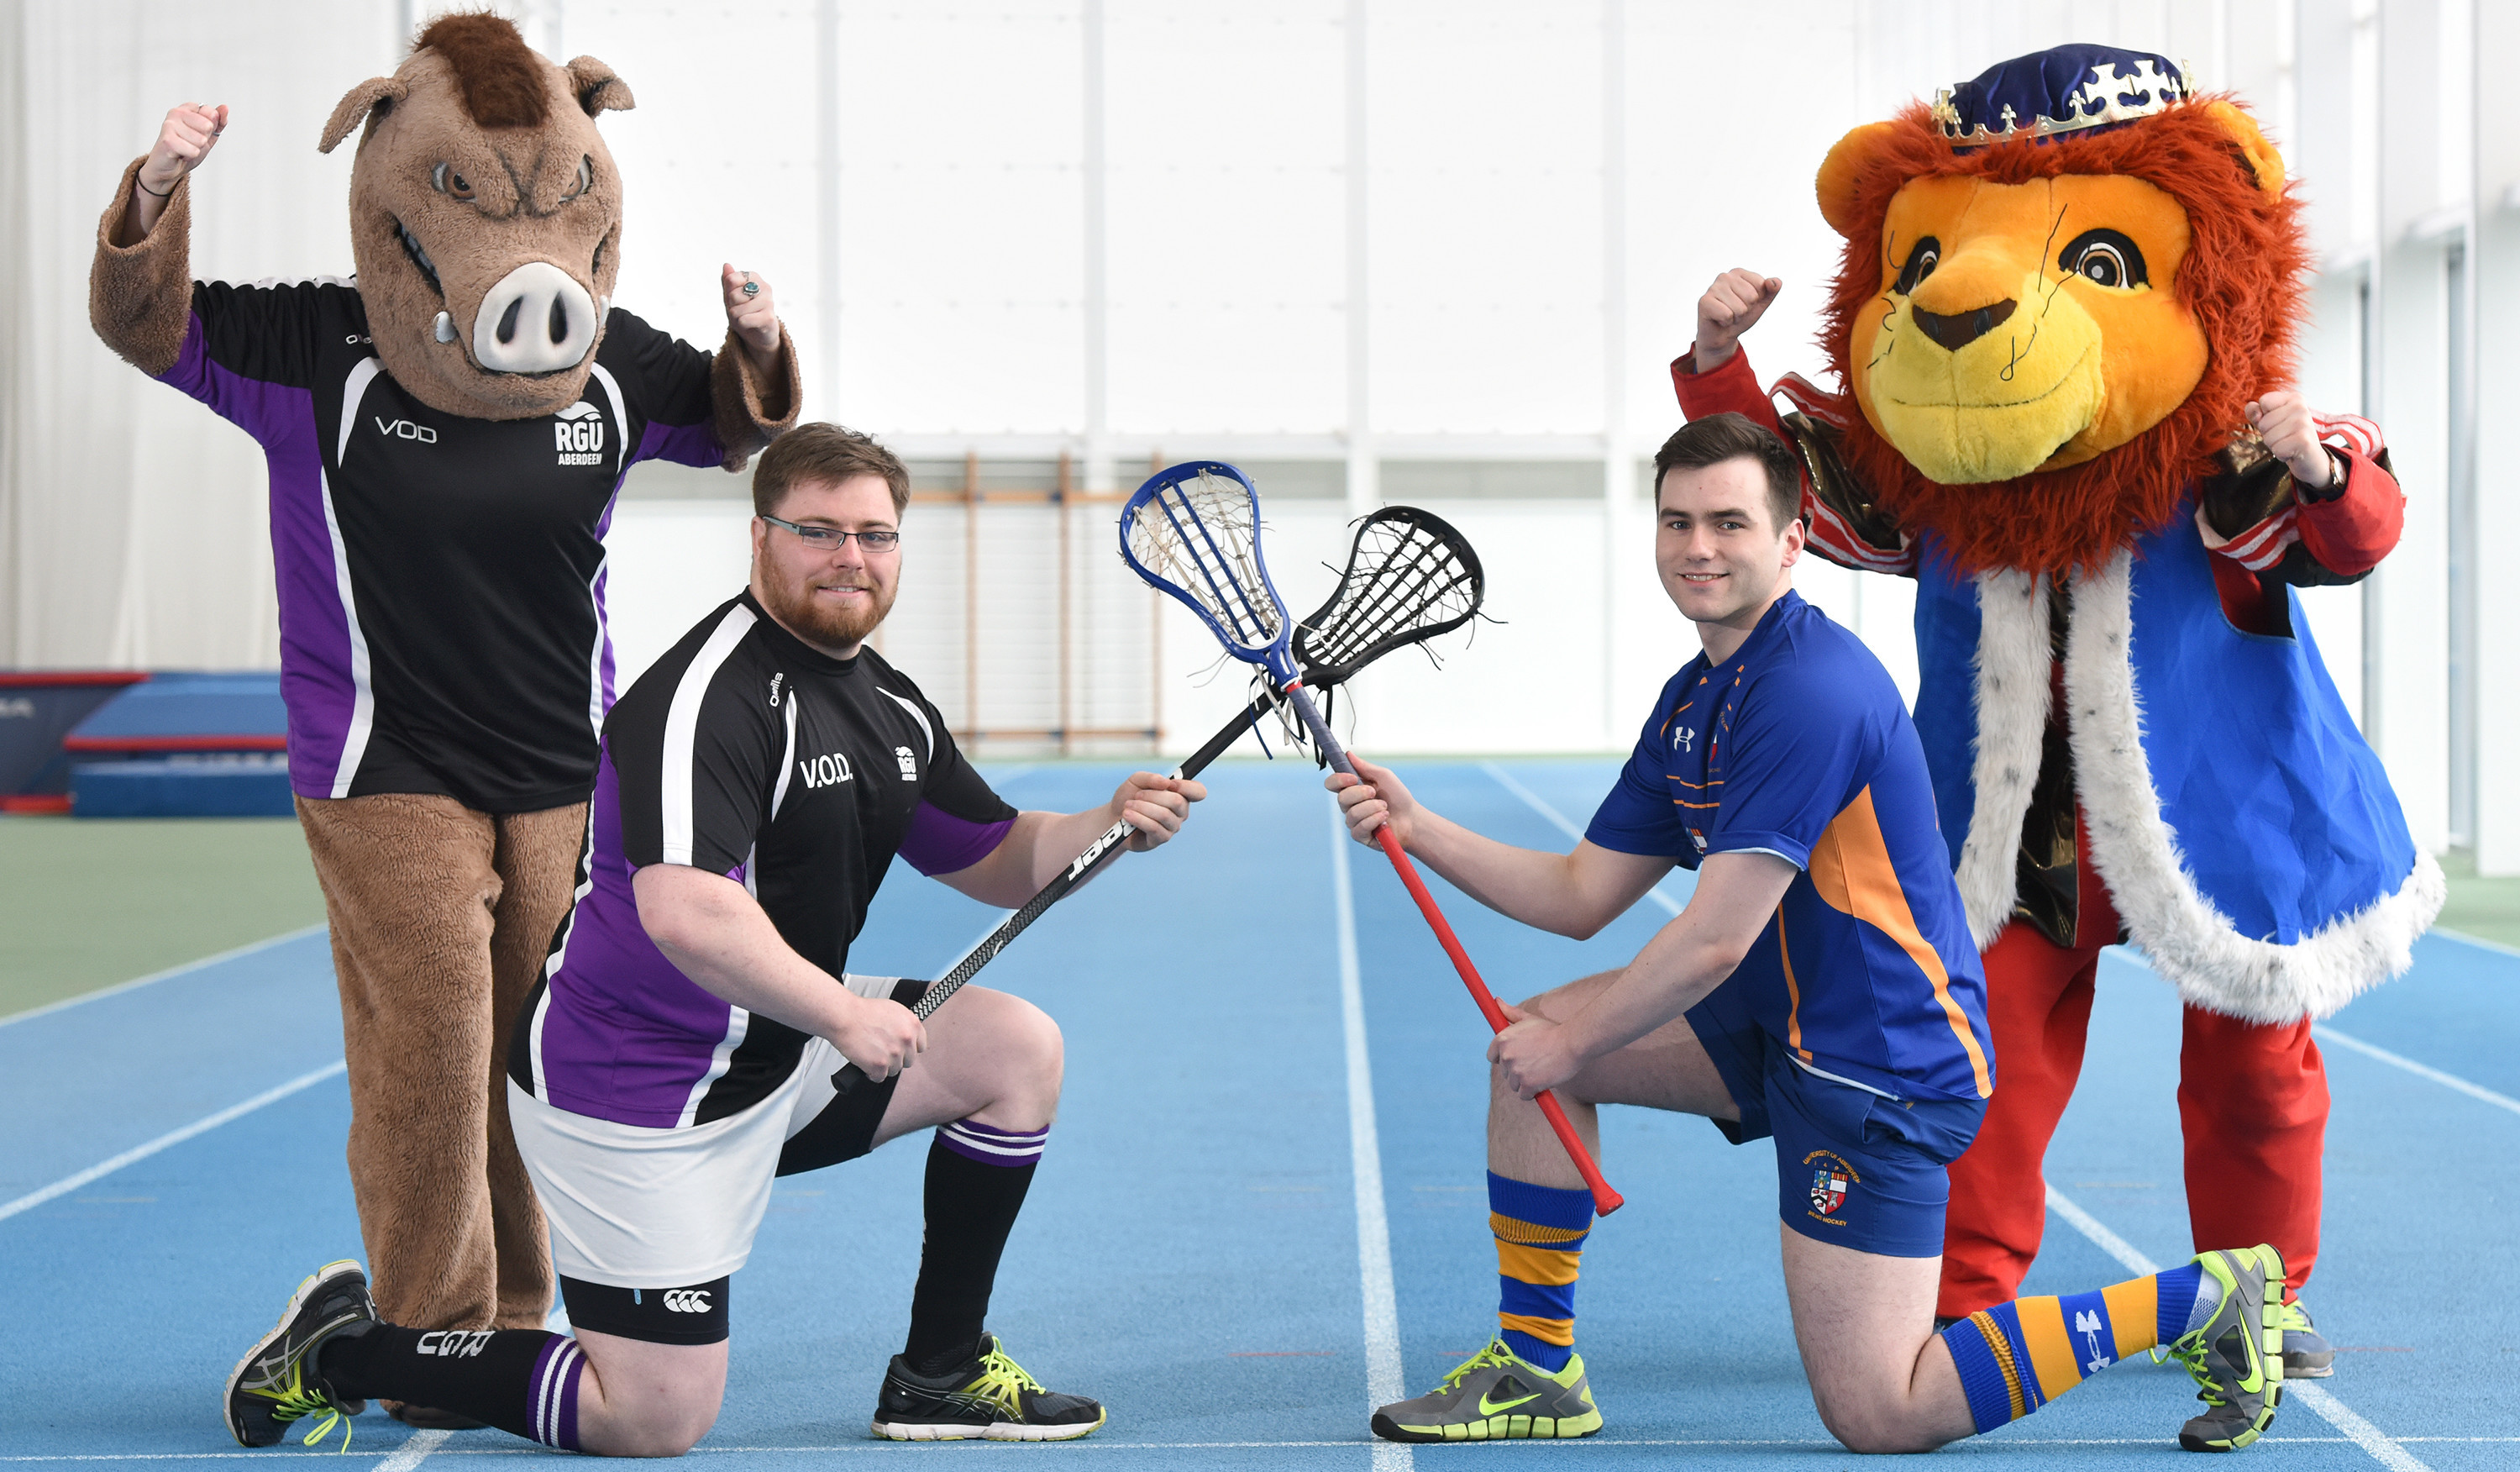 Sports Presidents Vinny O'Donovan (left) and Mark McCorkell are gearing up for the Granite City Challenge along with RGU mascot Bobby the Boar, and Rex the Lion from the University of Aberdeen.